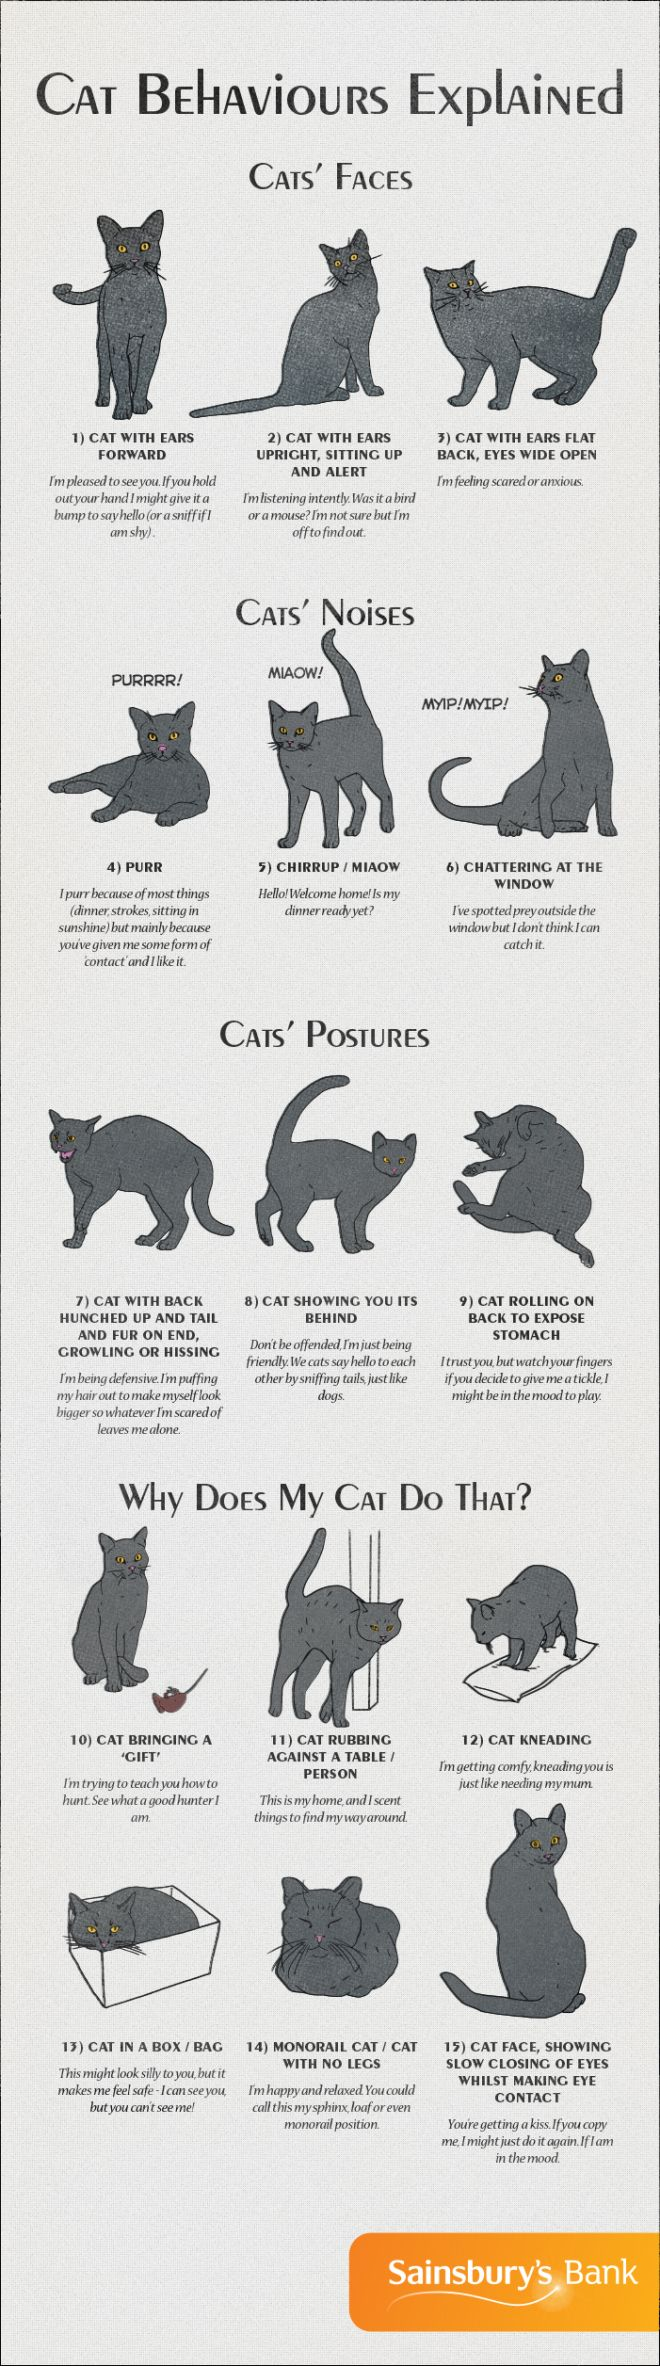 Cat body language, noises, postures, facial expressions, etc. explained... cat-behaviour-explained